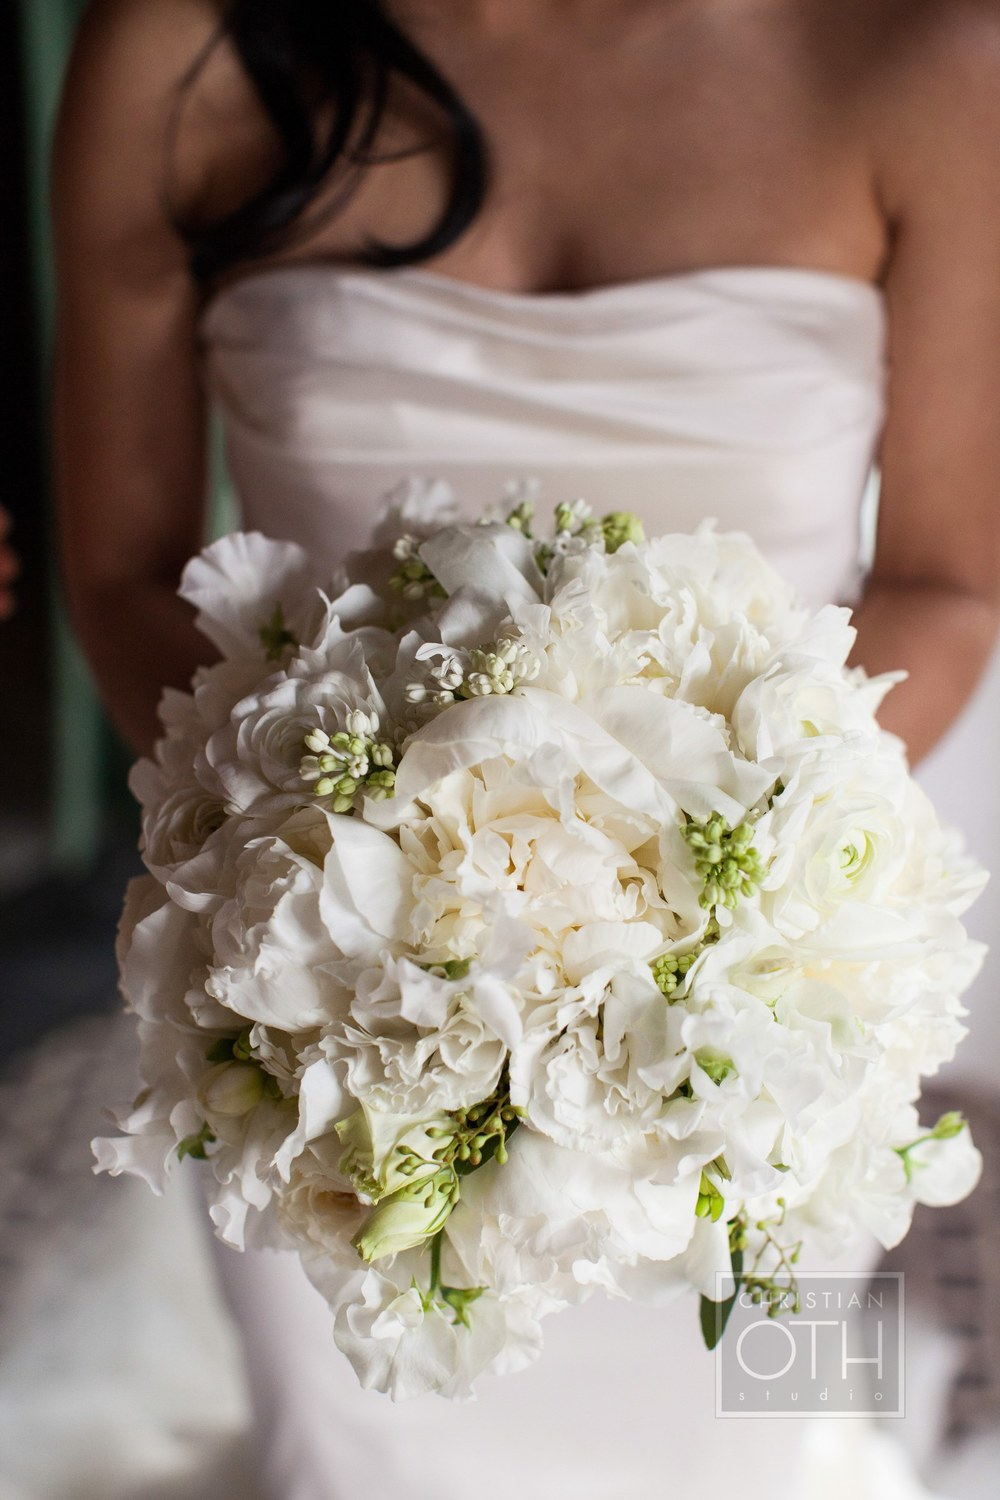 All white bouquet by Belle Fleur photographed by Christian Oth Studios.